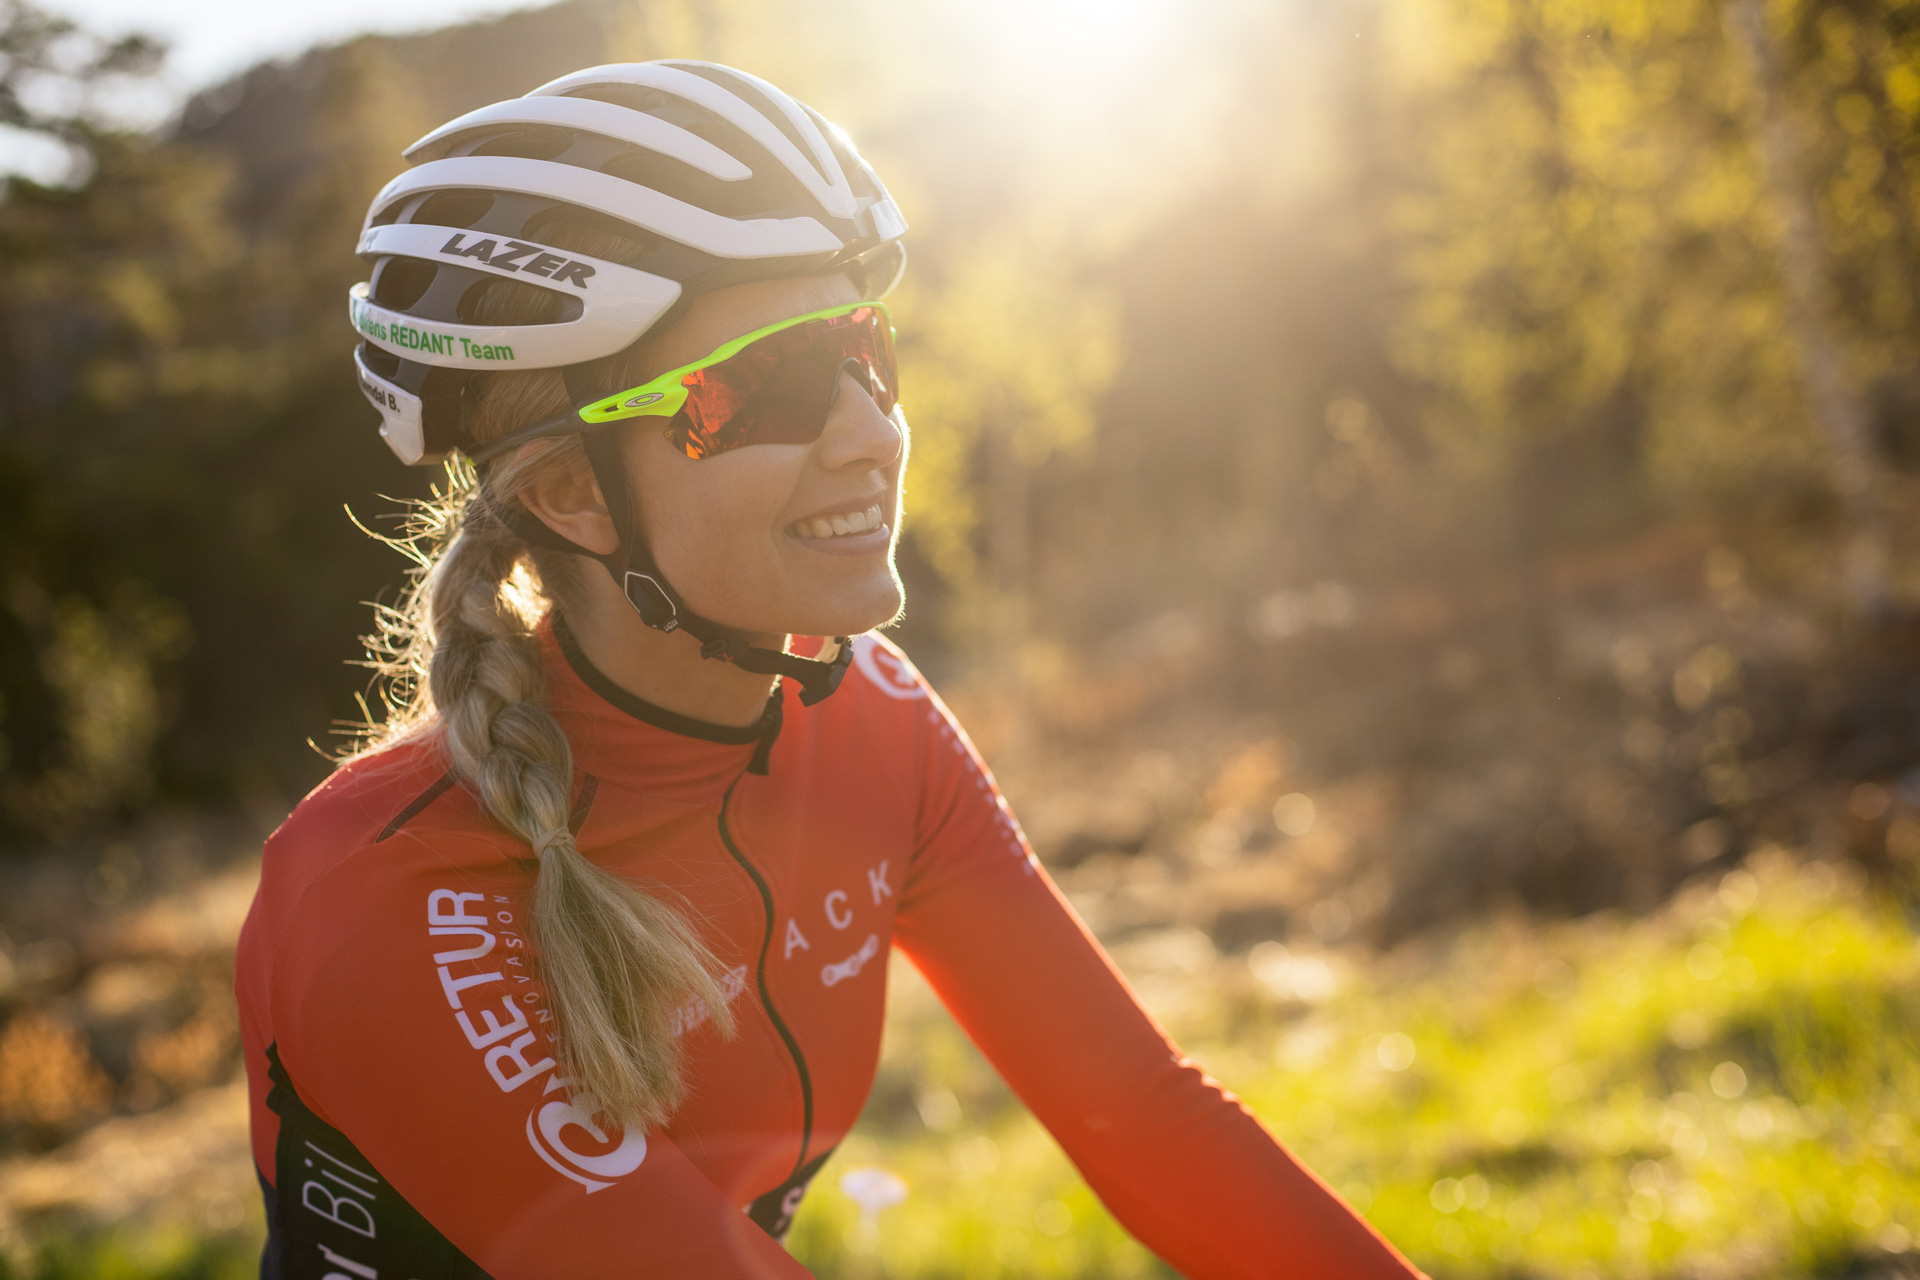 Birgitte Ravndal 5 tips on how to get back after an injury